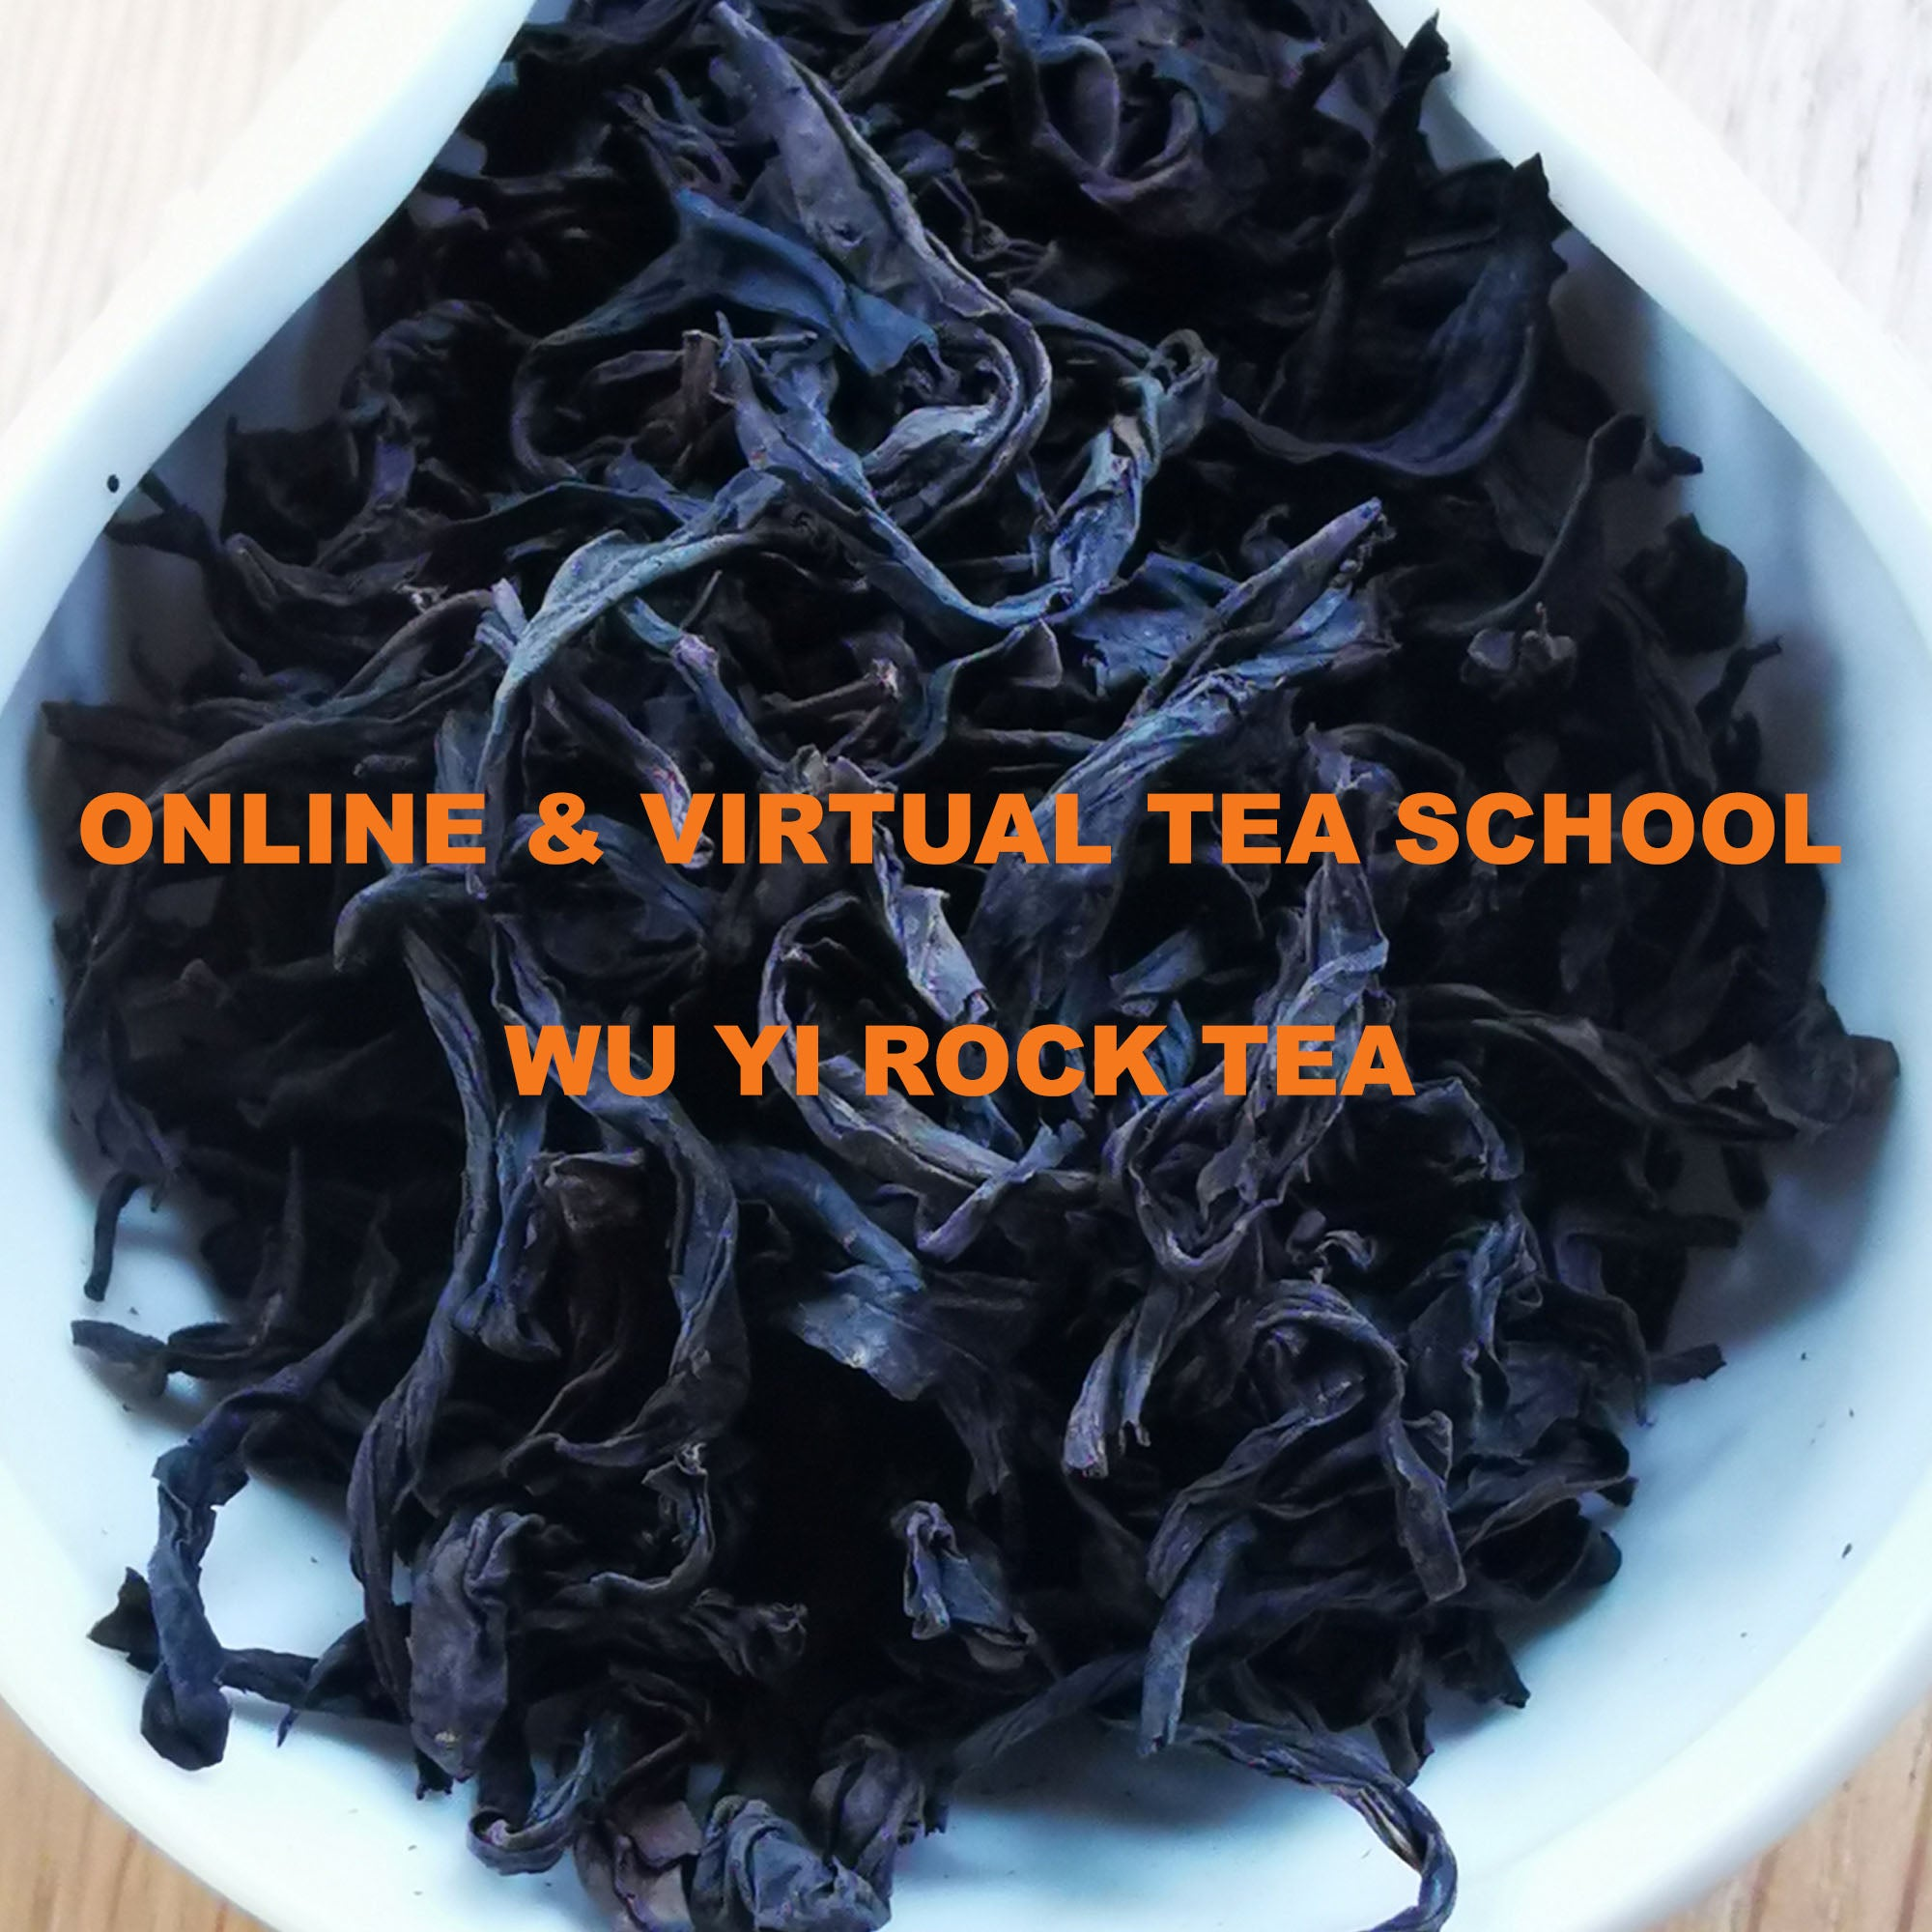 VIRTUAL TEA SCHOOL - WU YI ROCK TEA